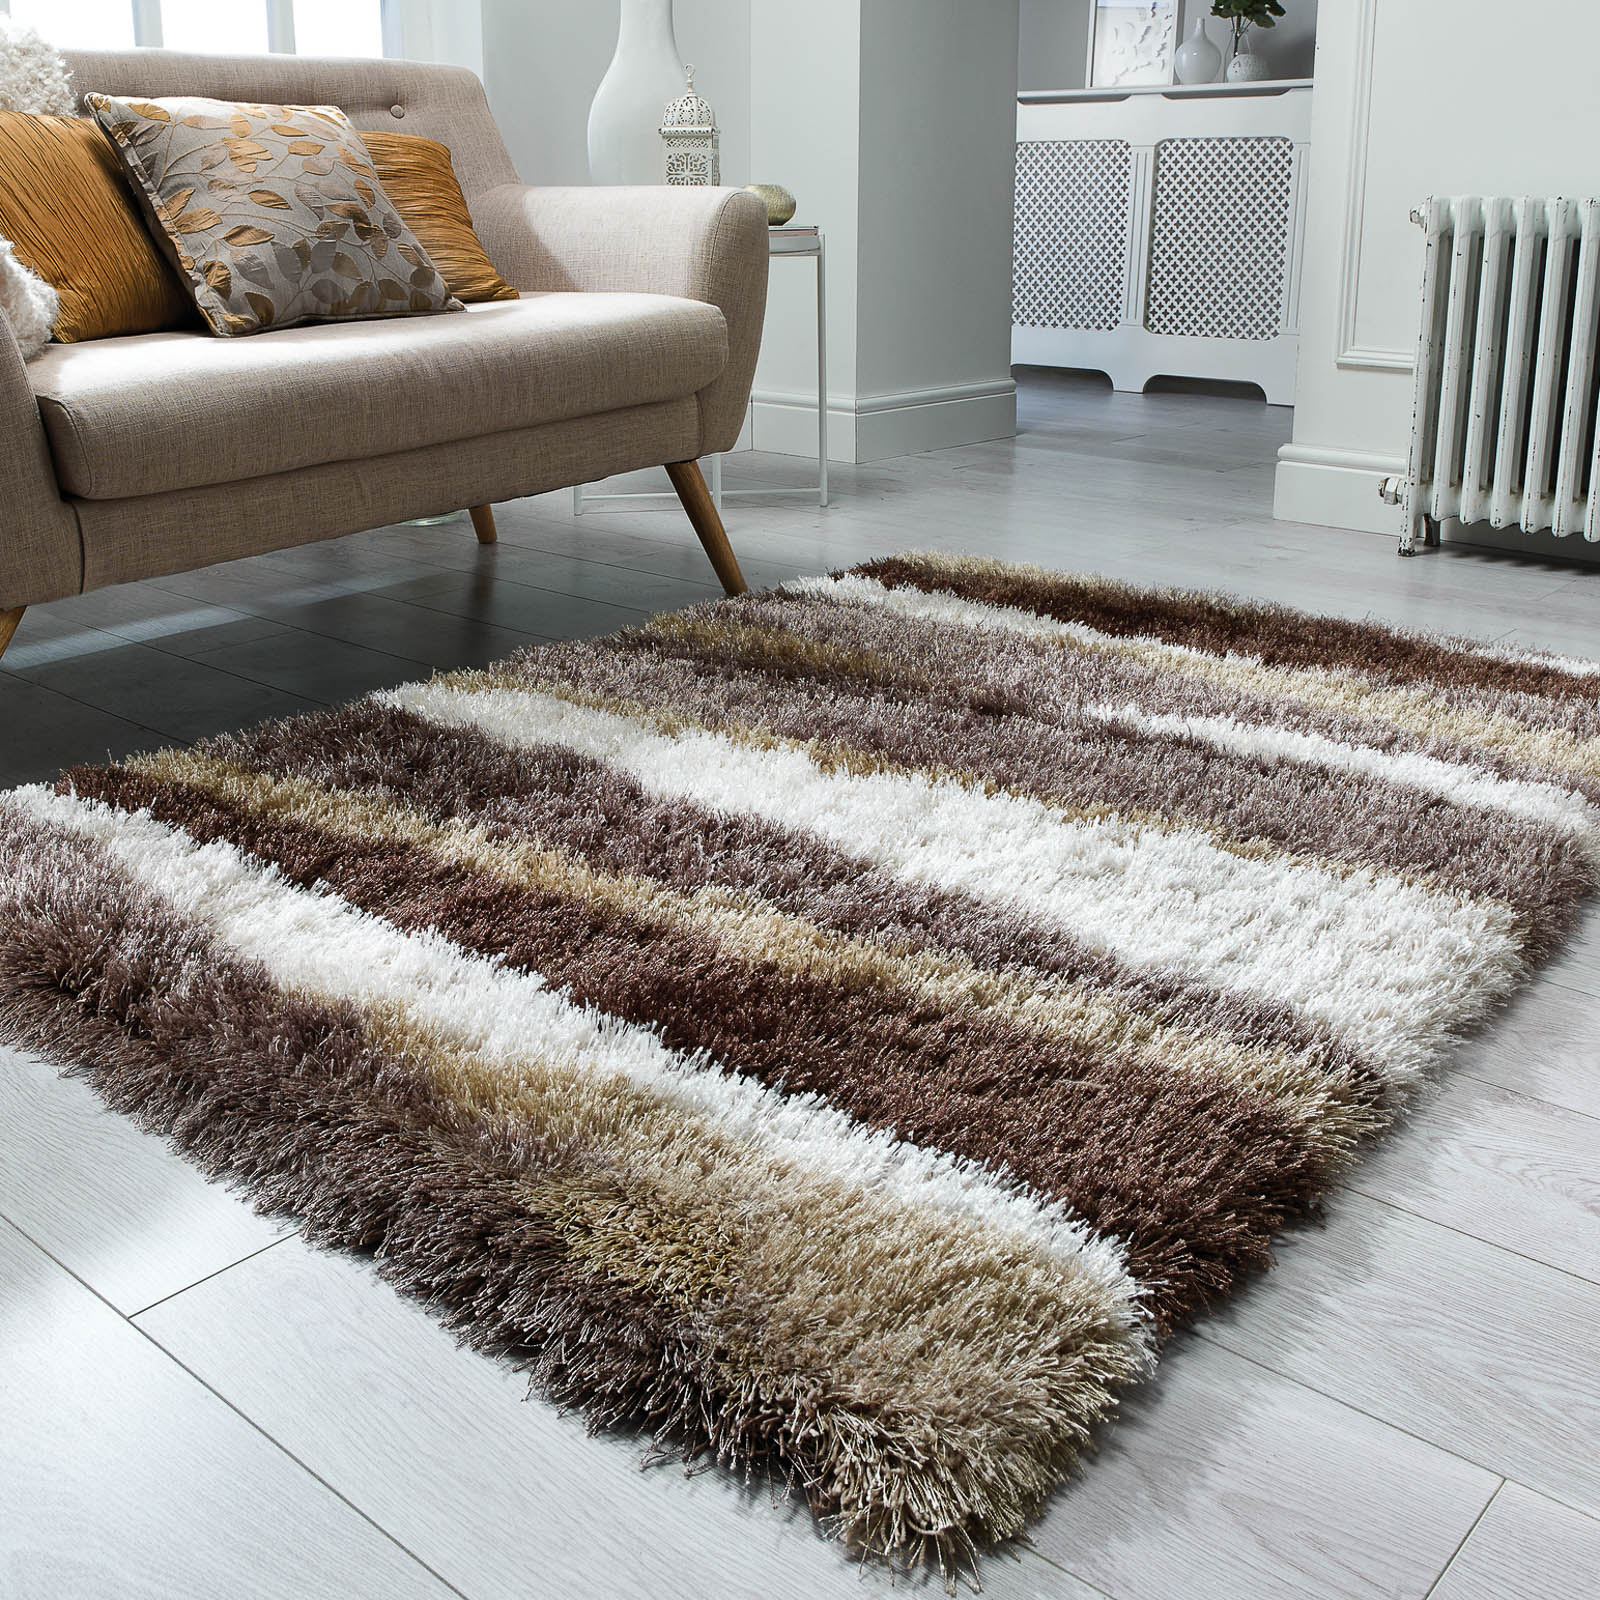 Shaggy Wool Rugs: The Best Ways To Clean And Care For Your Shaggy Rug